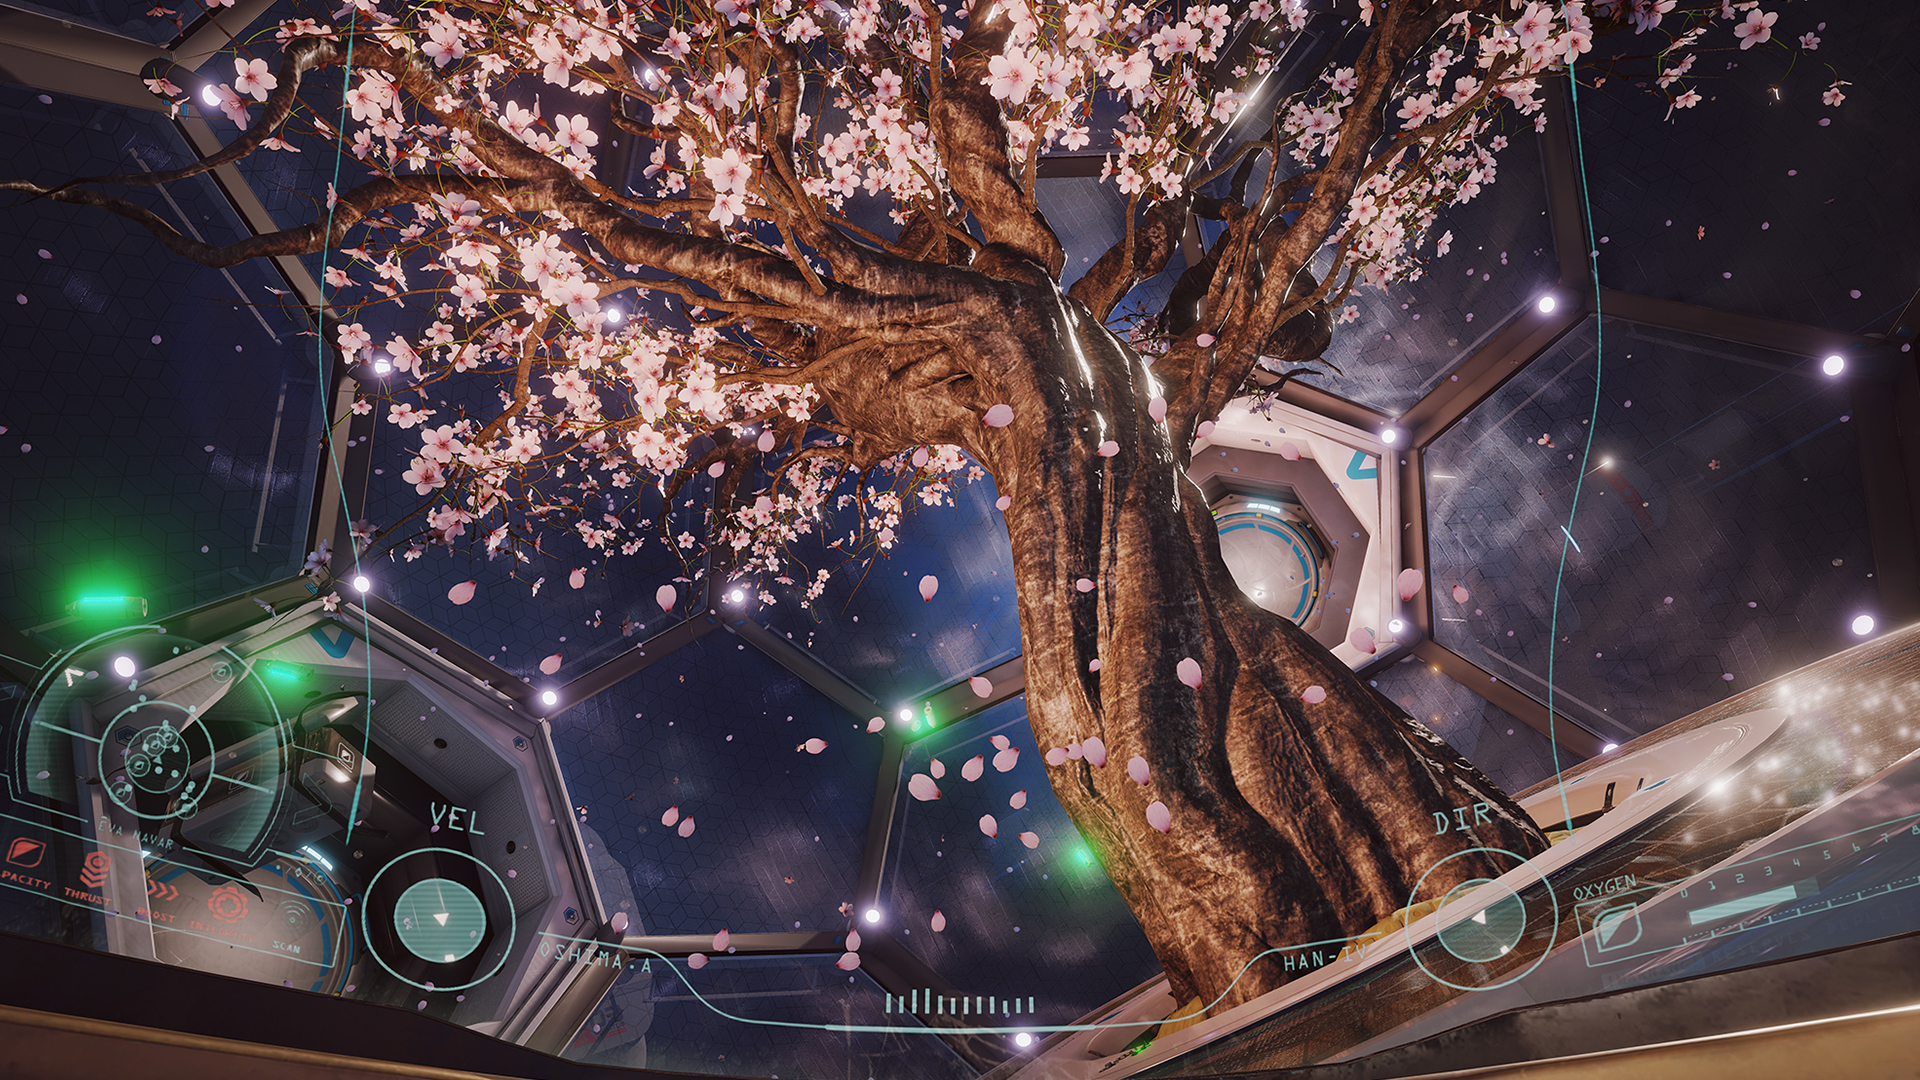 download adr1ft include all dlcs and latest update repack by corepack fitgirl singlelink iso rar part kumpulbagi kutucugum partagora